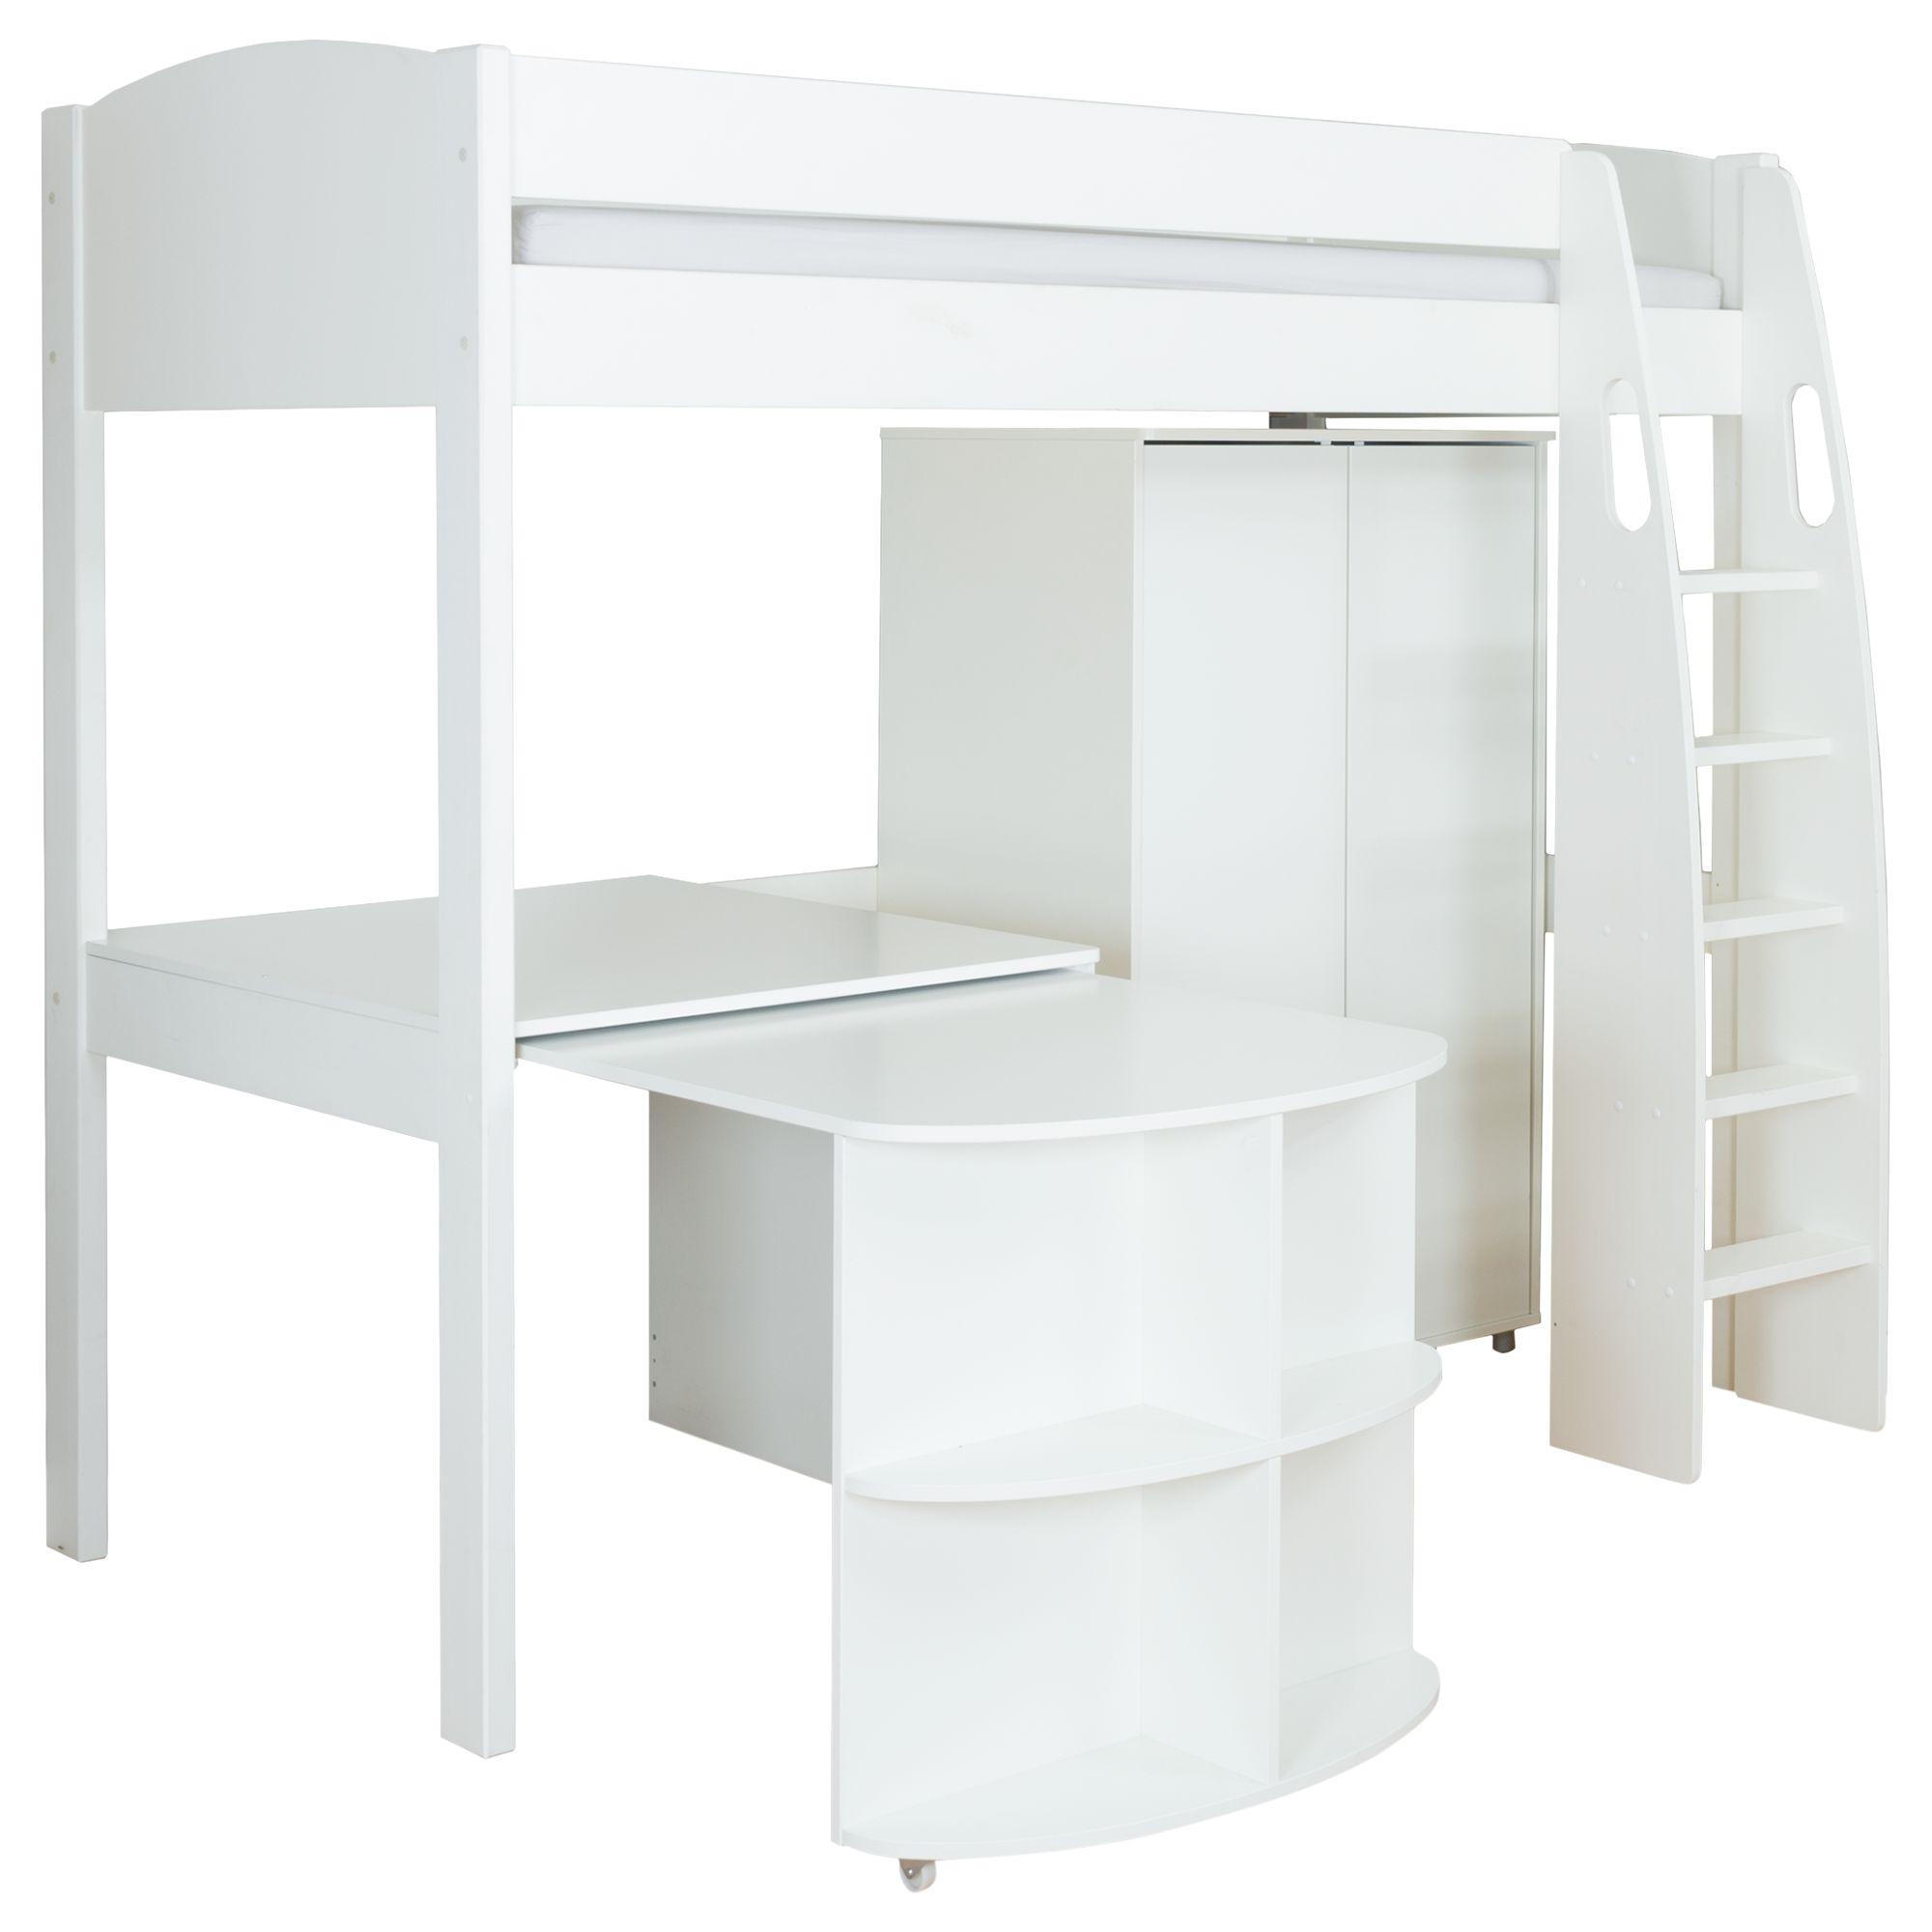 Stompa Stompa Uno S Plus High-Sleeper Bed with Wardrobe and Pull-Out Desk